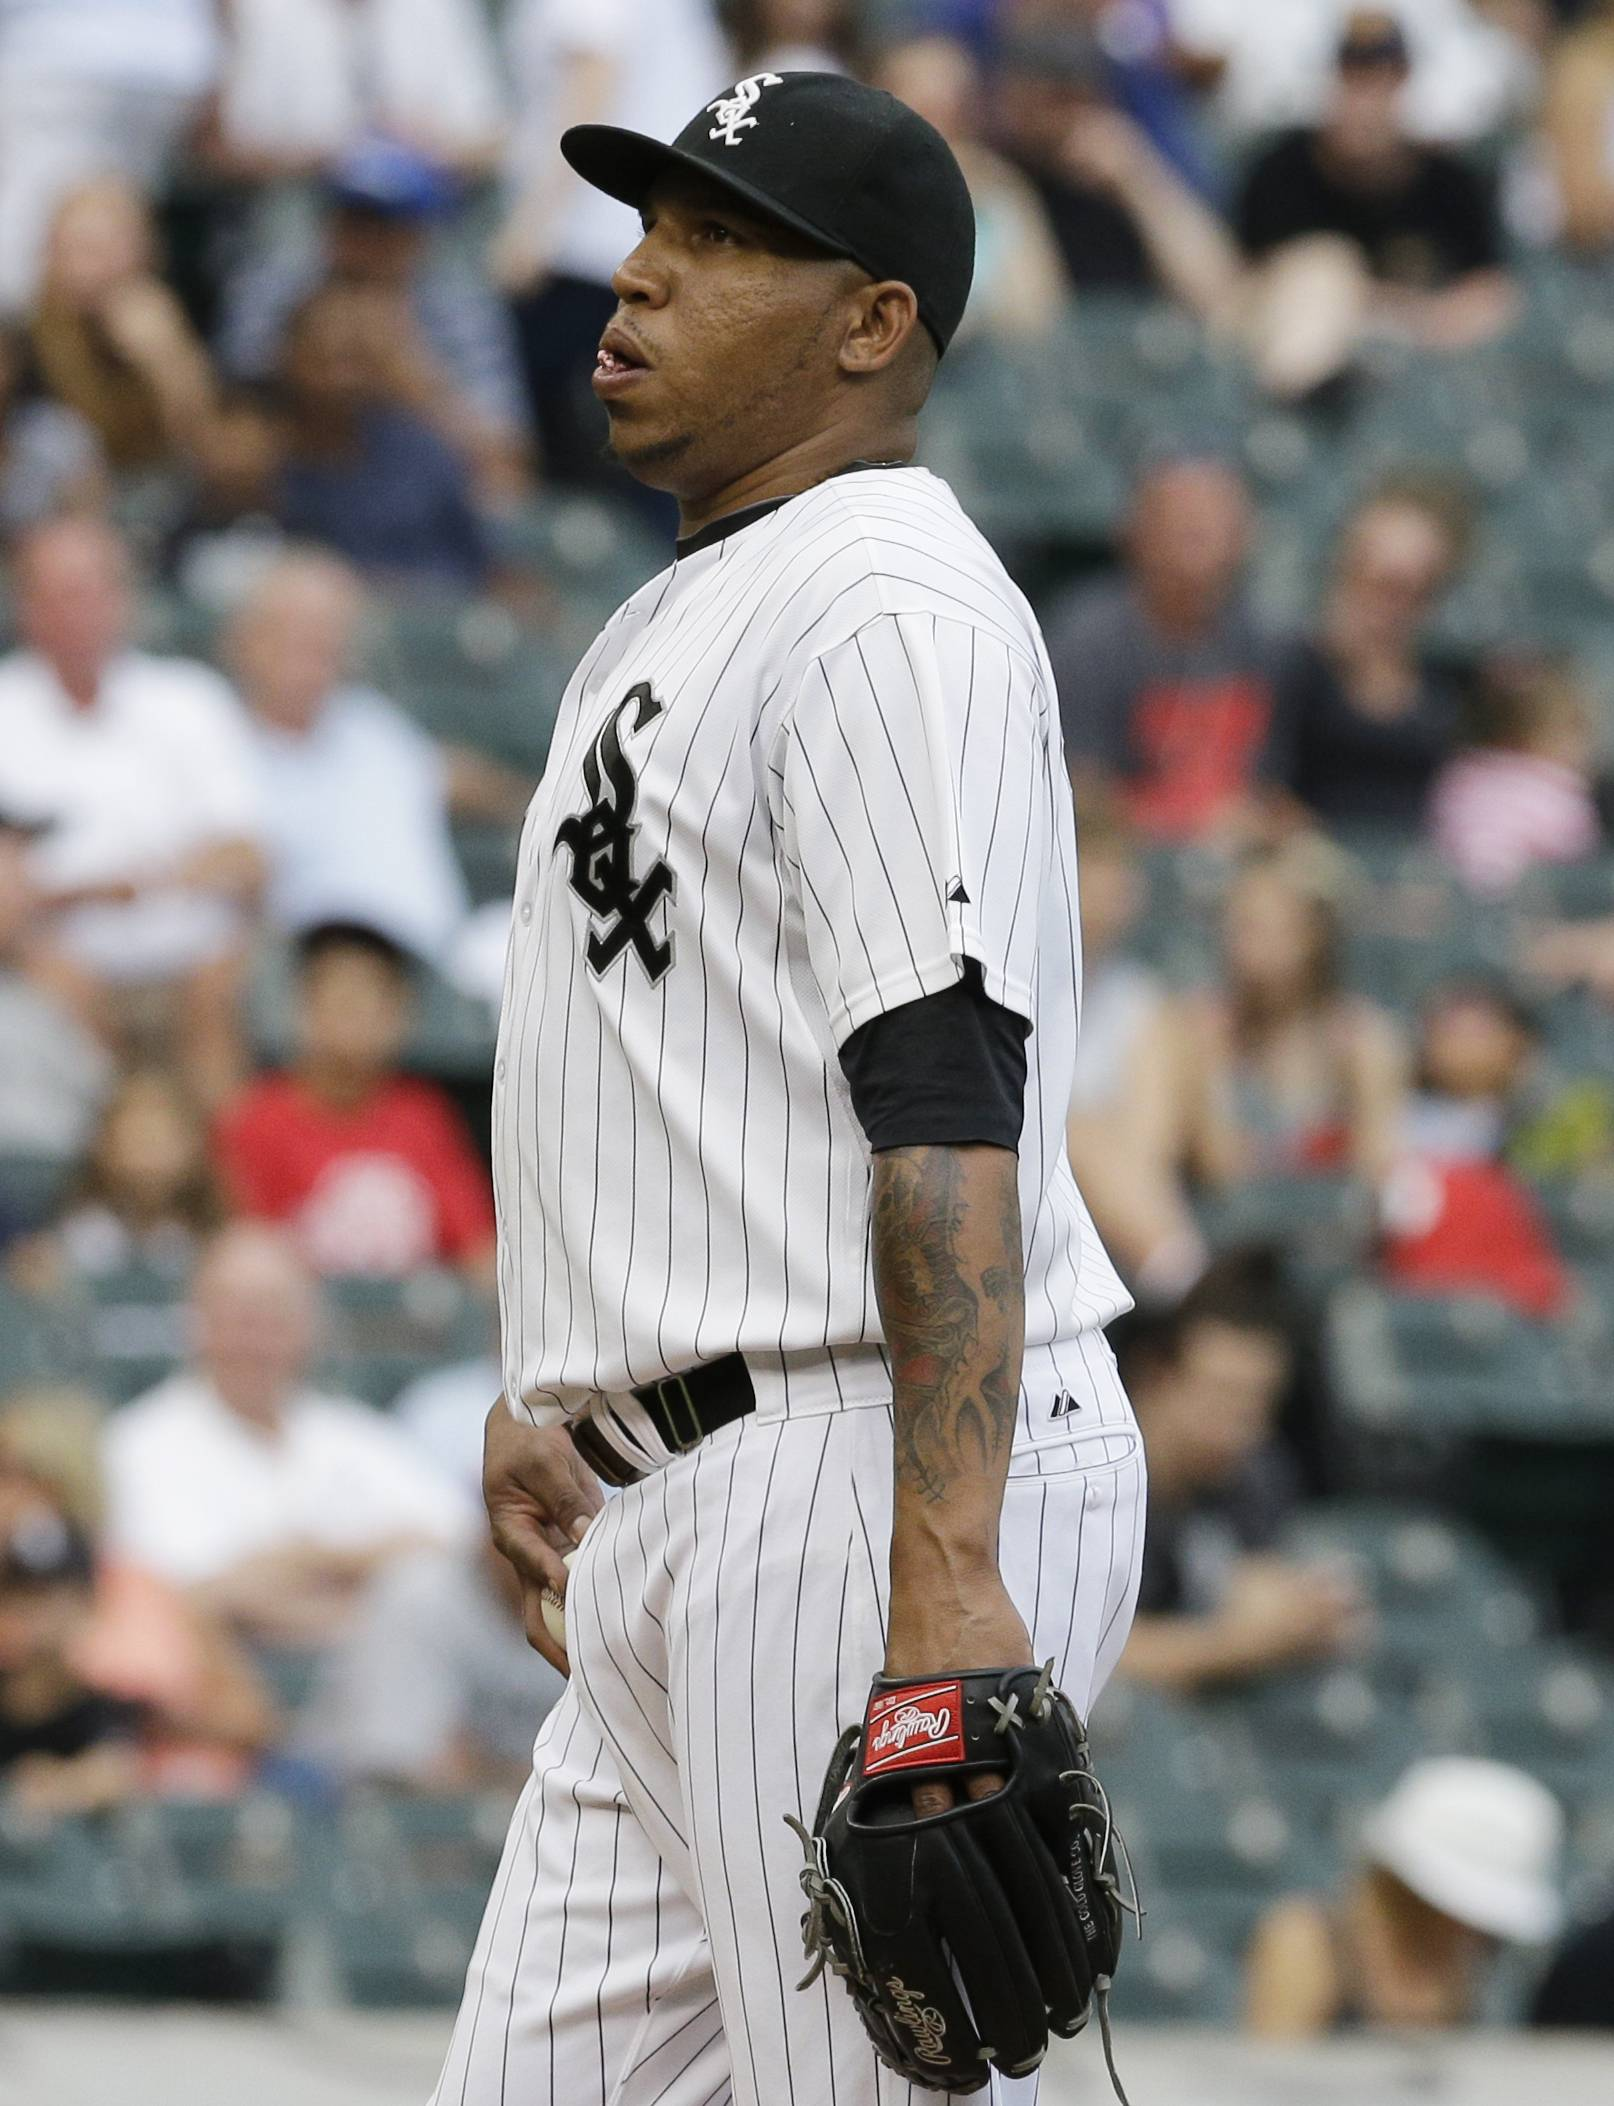 Chicago White Sox relief pitcher Ronald Belisario reacts during the eighth inning of a baseball game against the Minnesota Twins in Chicago, Sunday, Aug. 3, 2014.